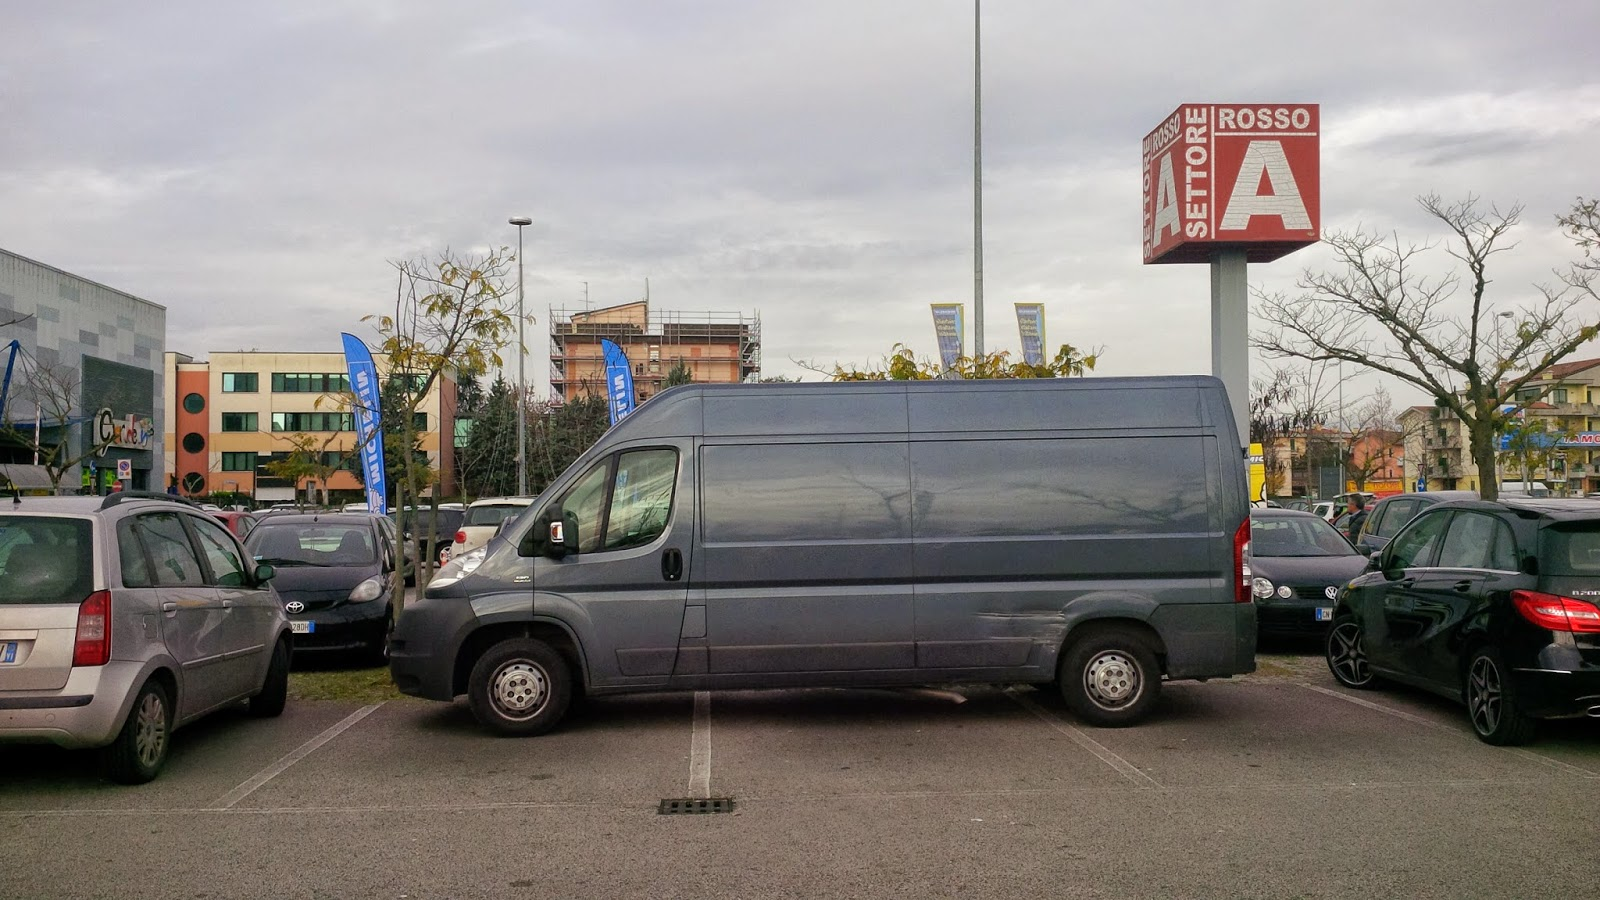 A van is parked across three parking spaces in a car park